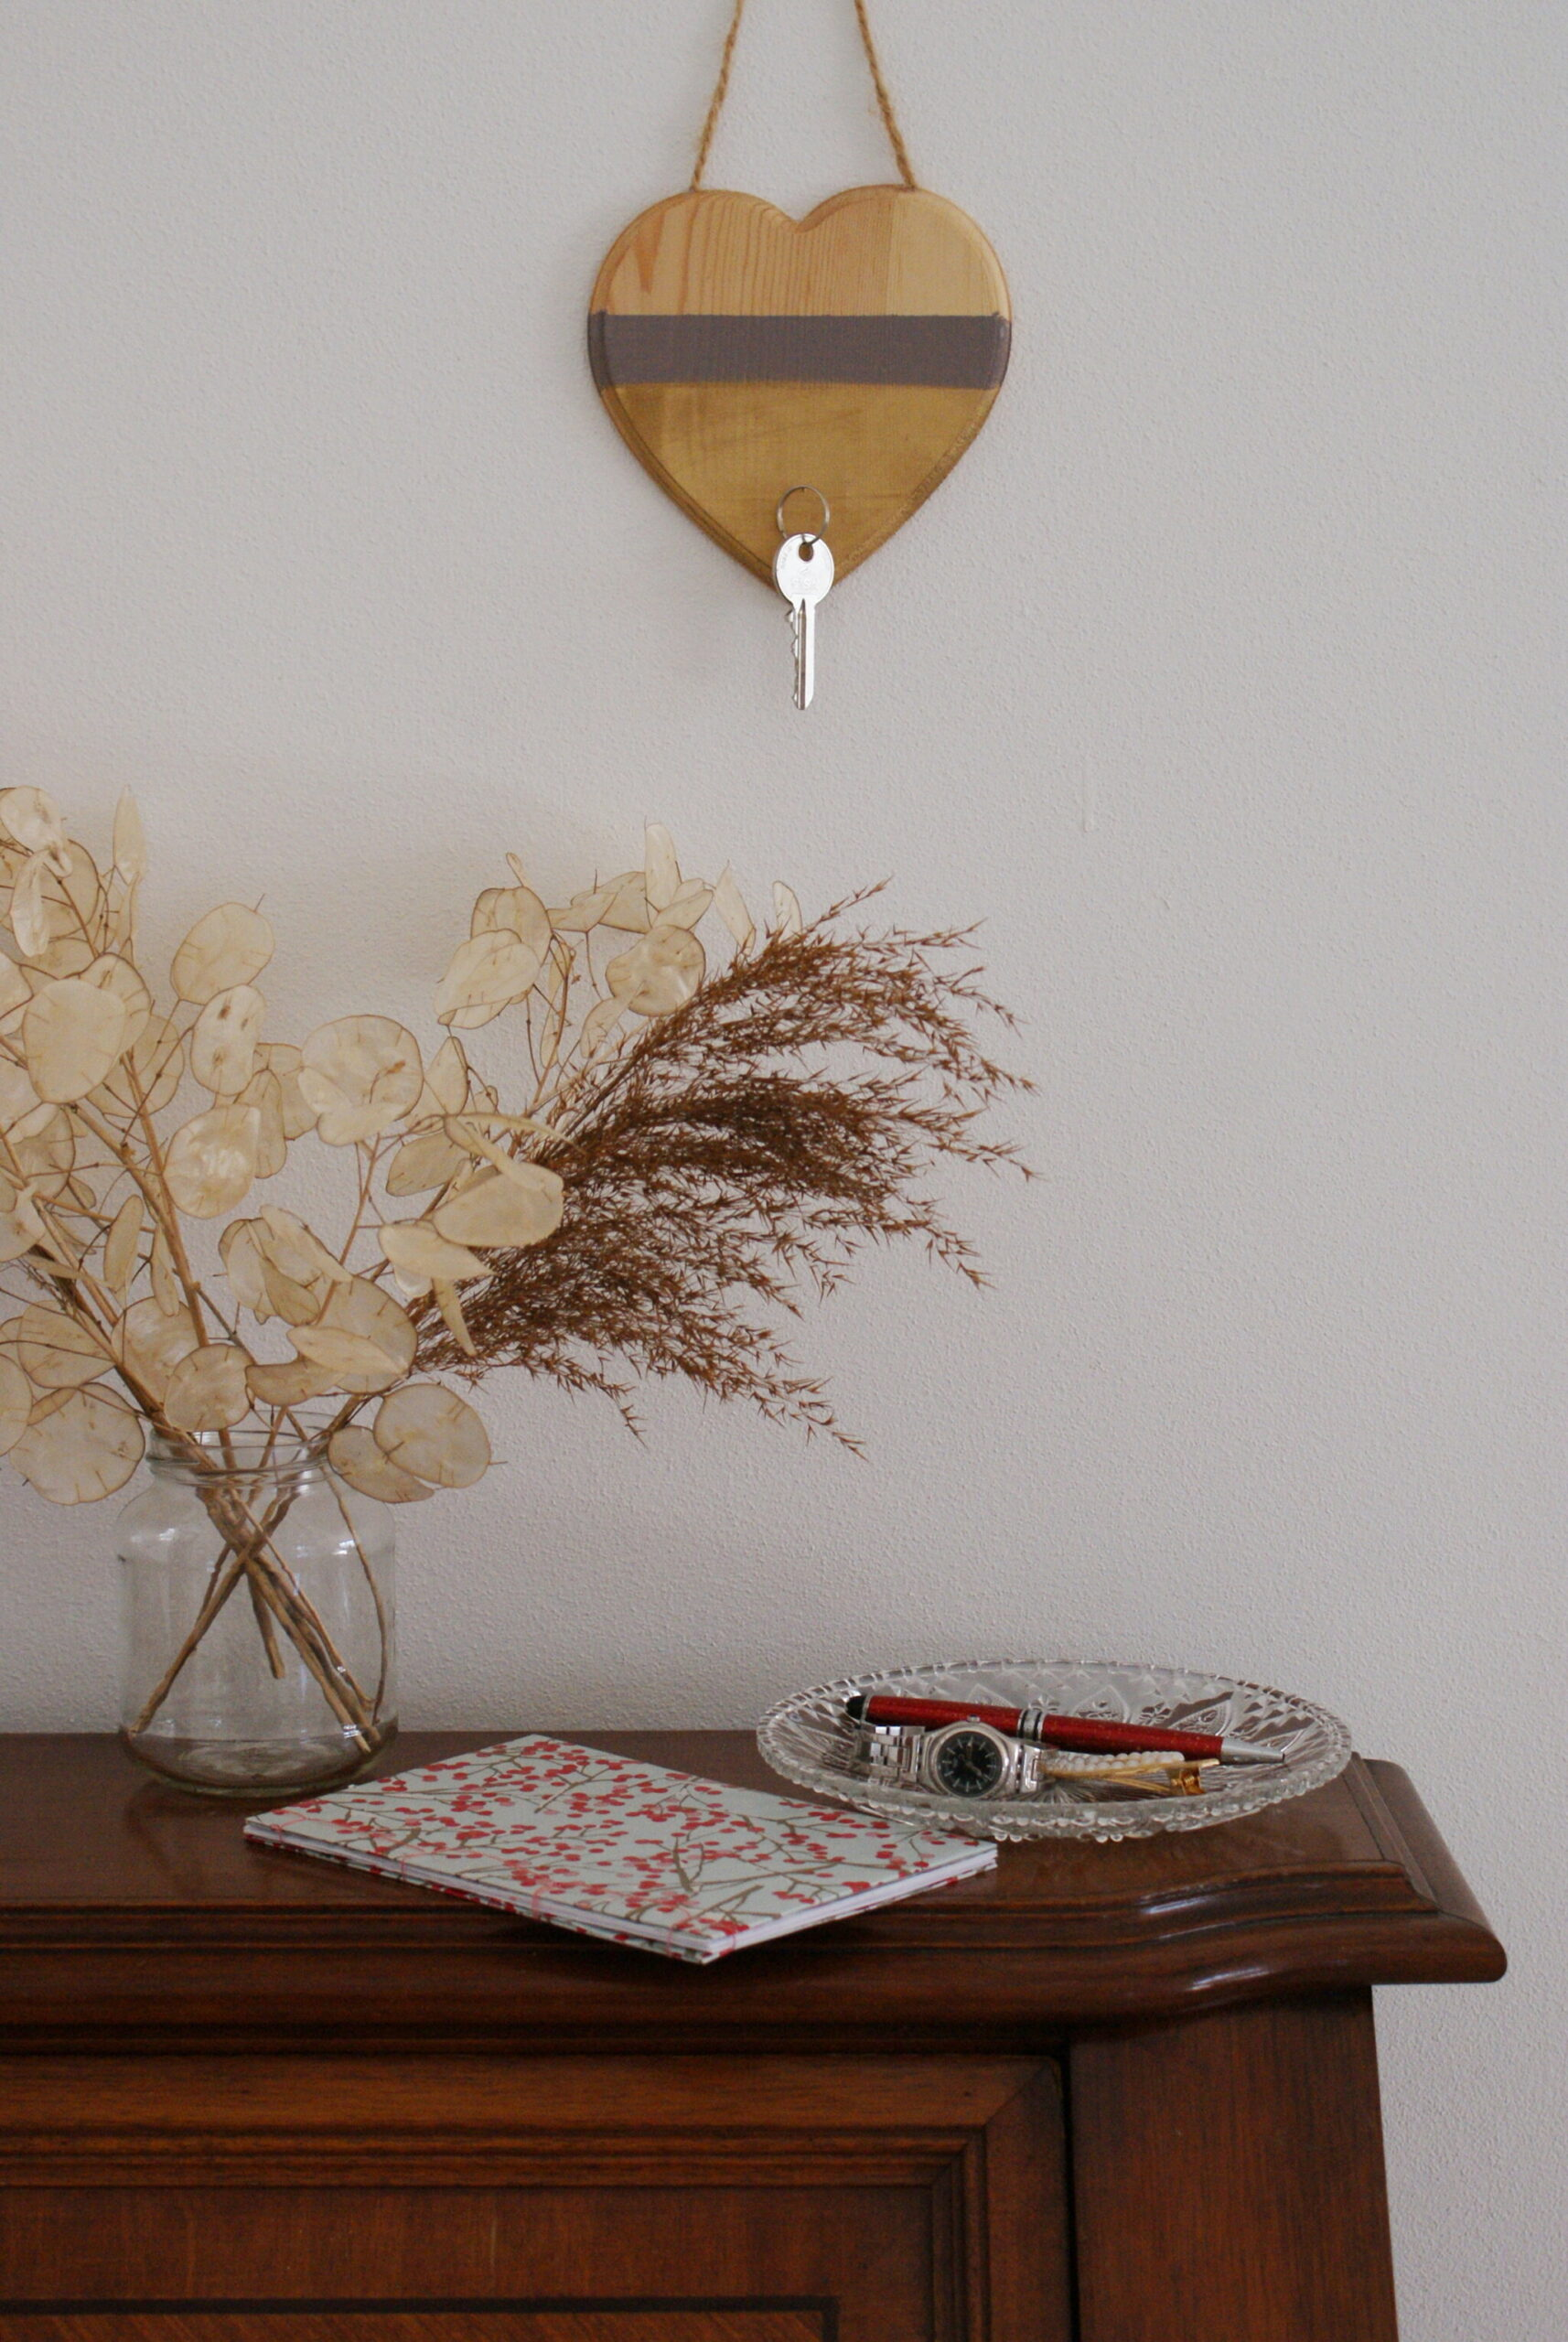 DIY MINIMALIST HANGING KEY HOLDER FOR THE ENTRYWAY